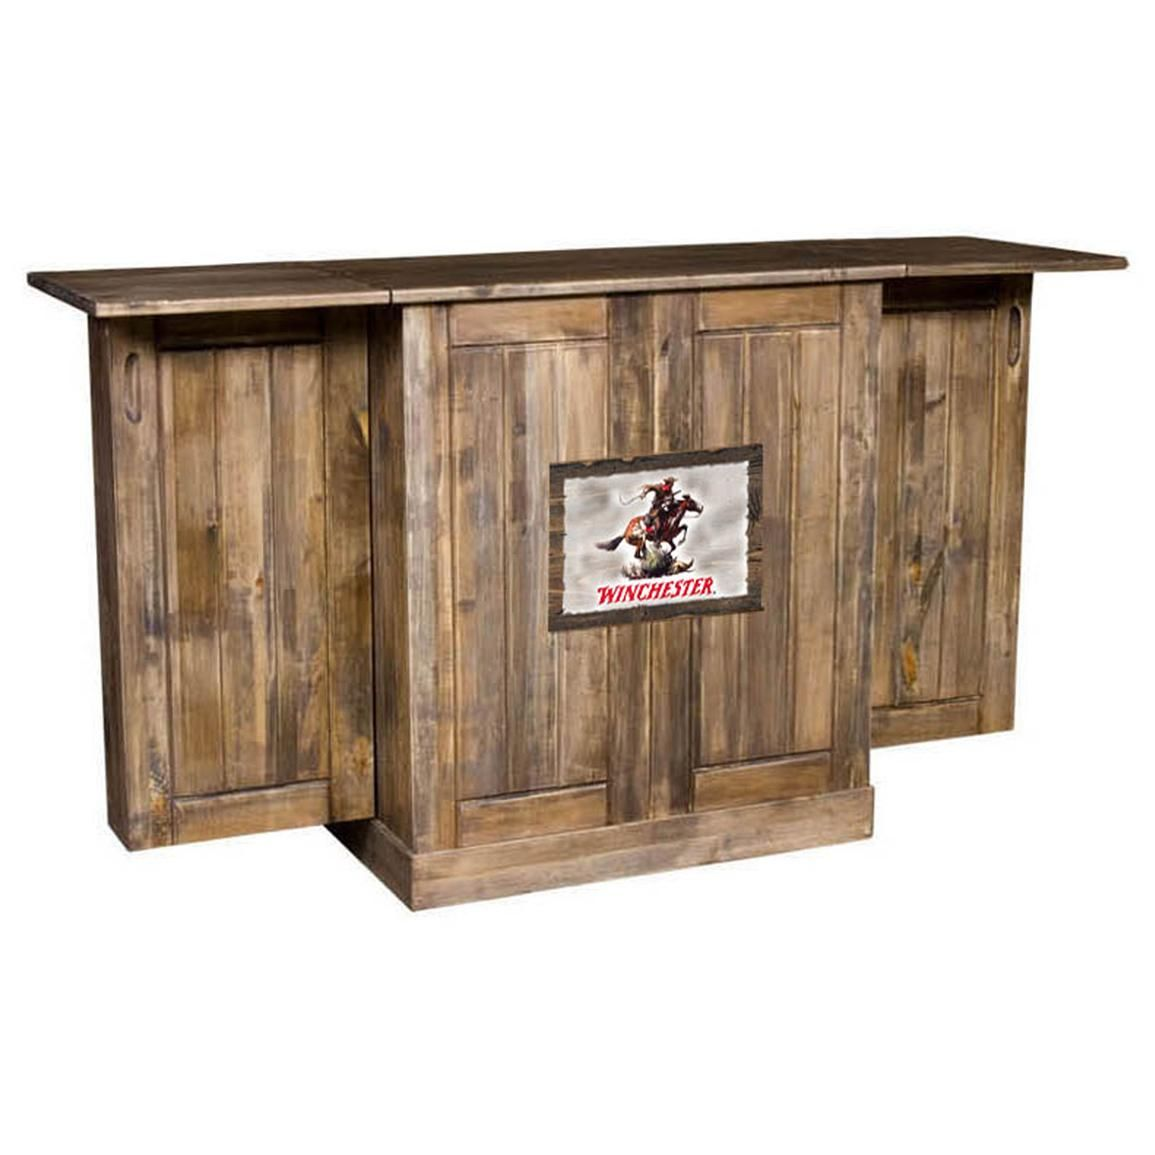 Portable Bars For The Home: Nice Rustic Looking Portable Bar, Could Just Cover The